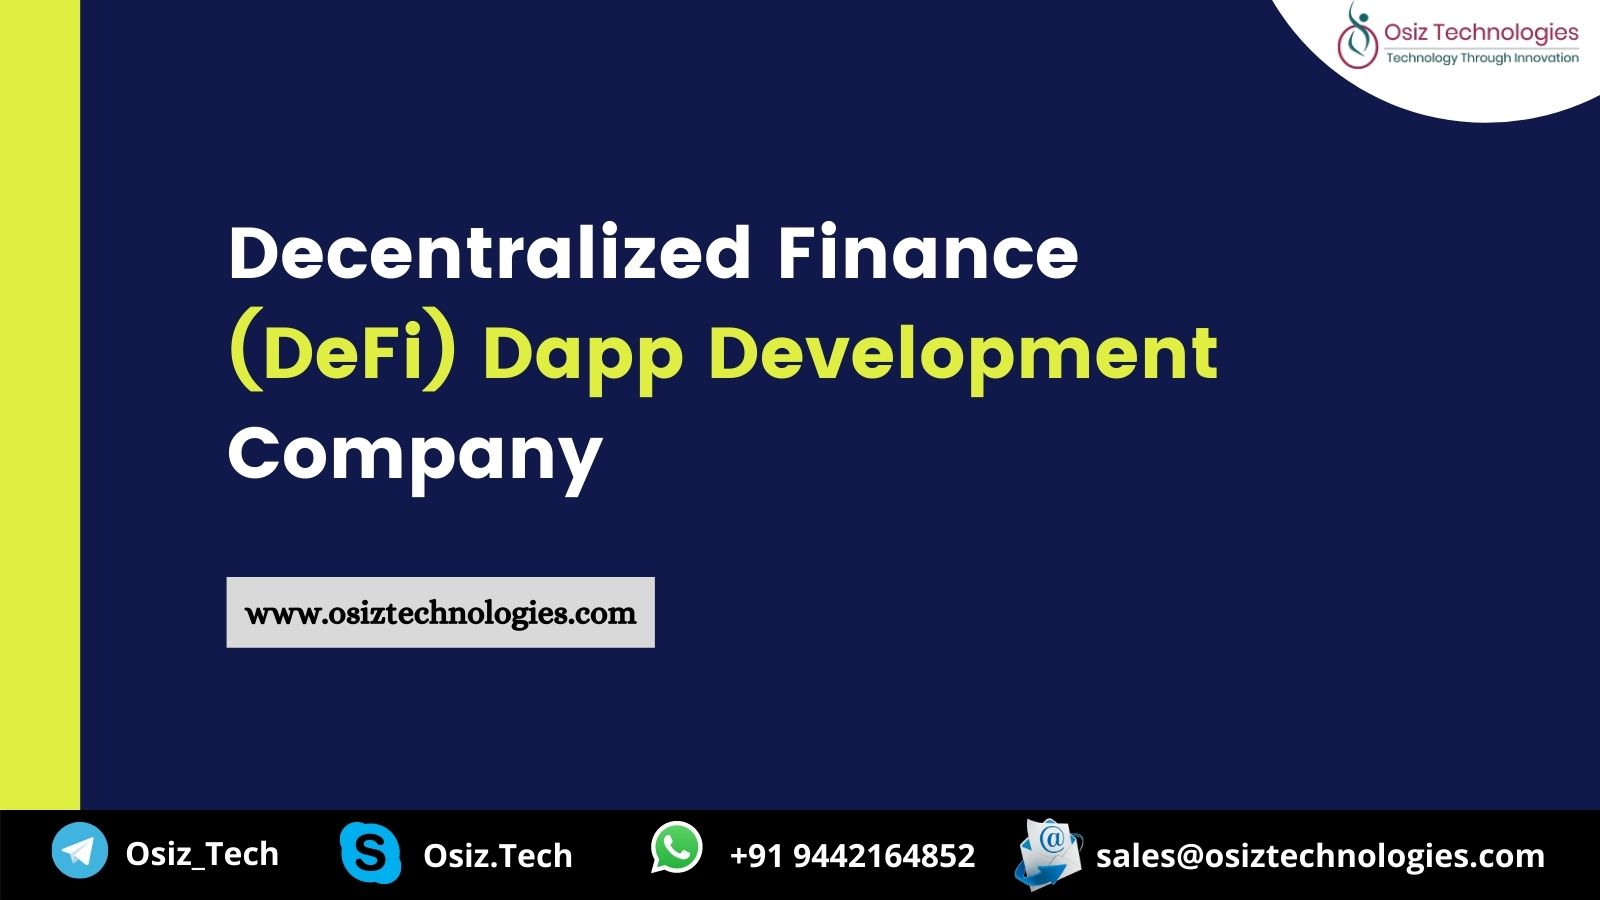 DeFi Dapp Development Company- Enhance your business through efficient Dapps on DeFi protocols